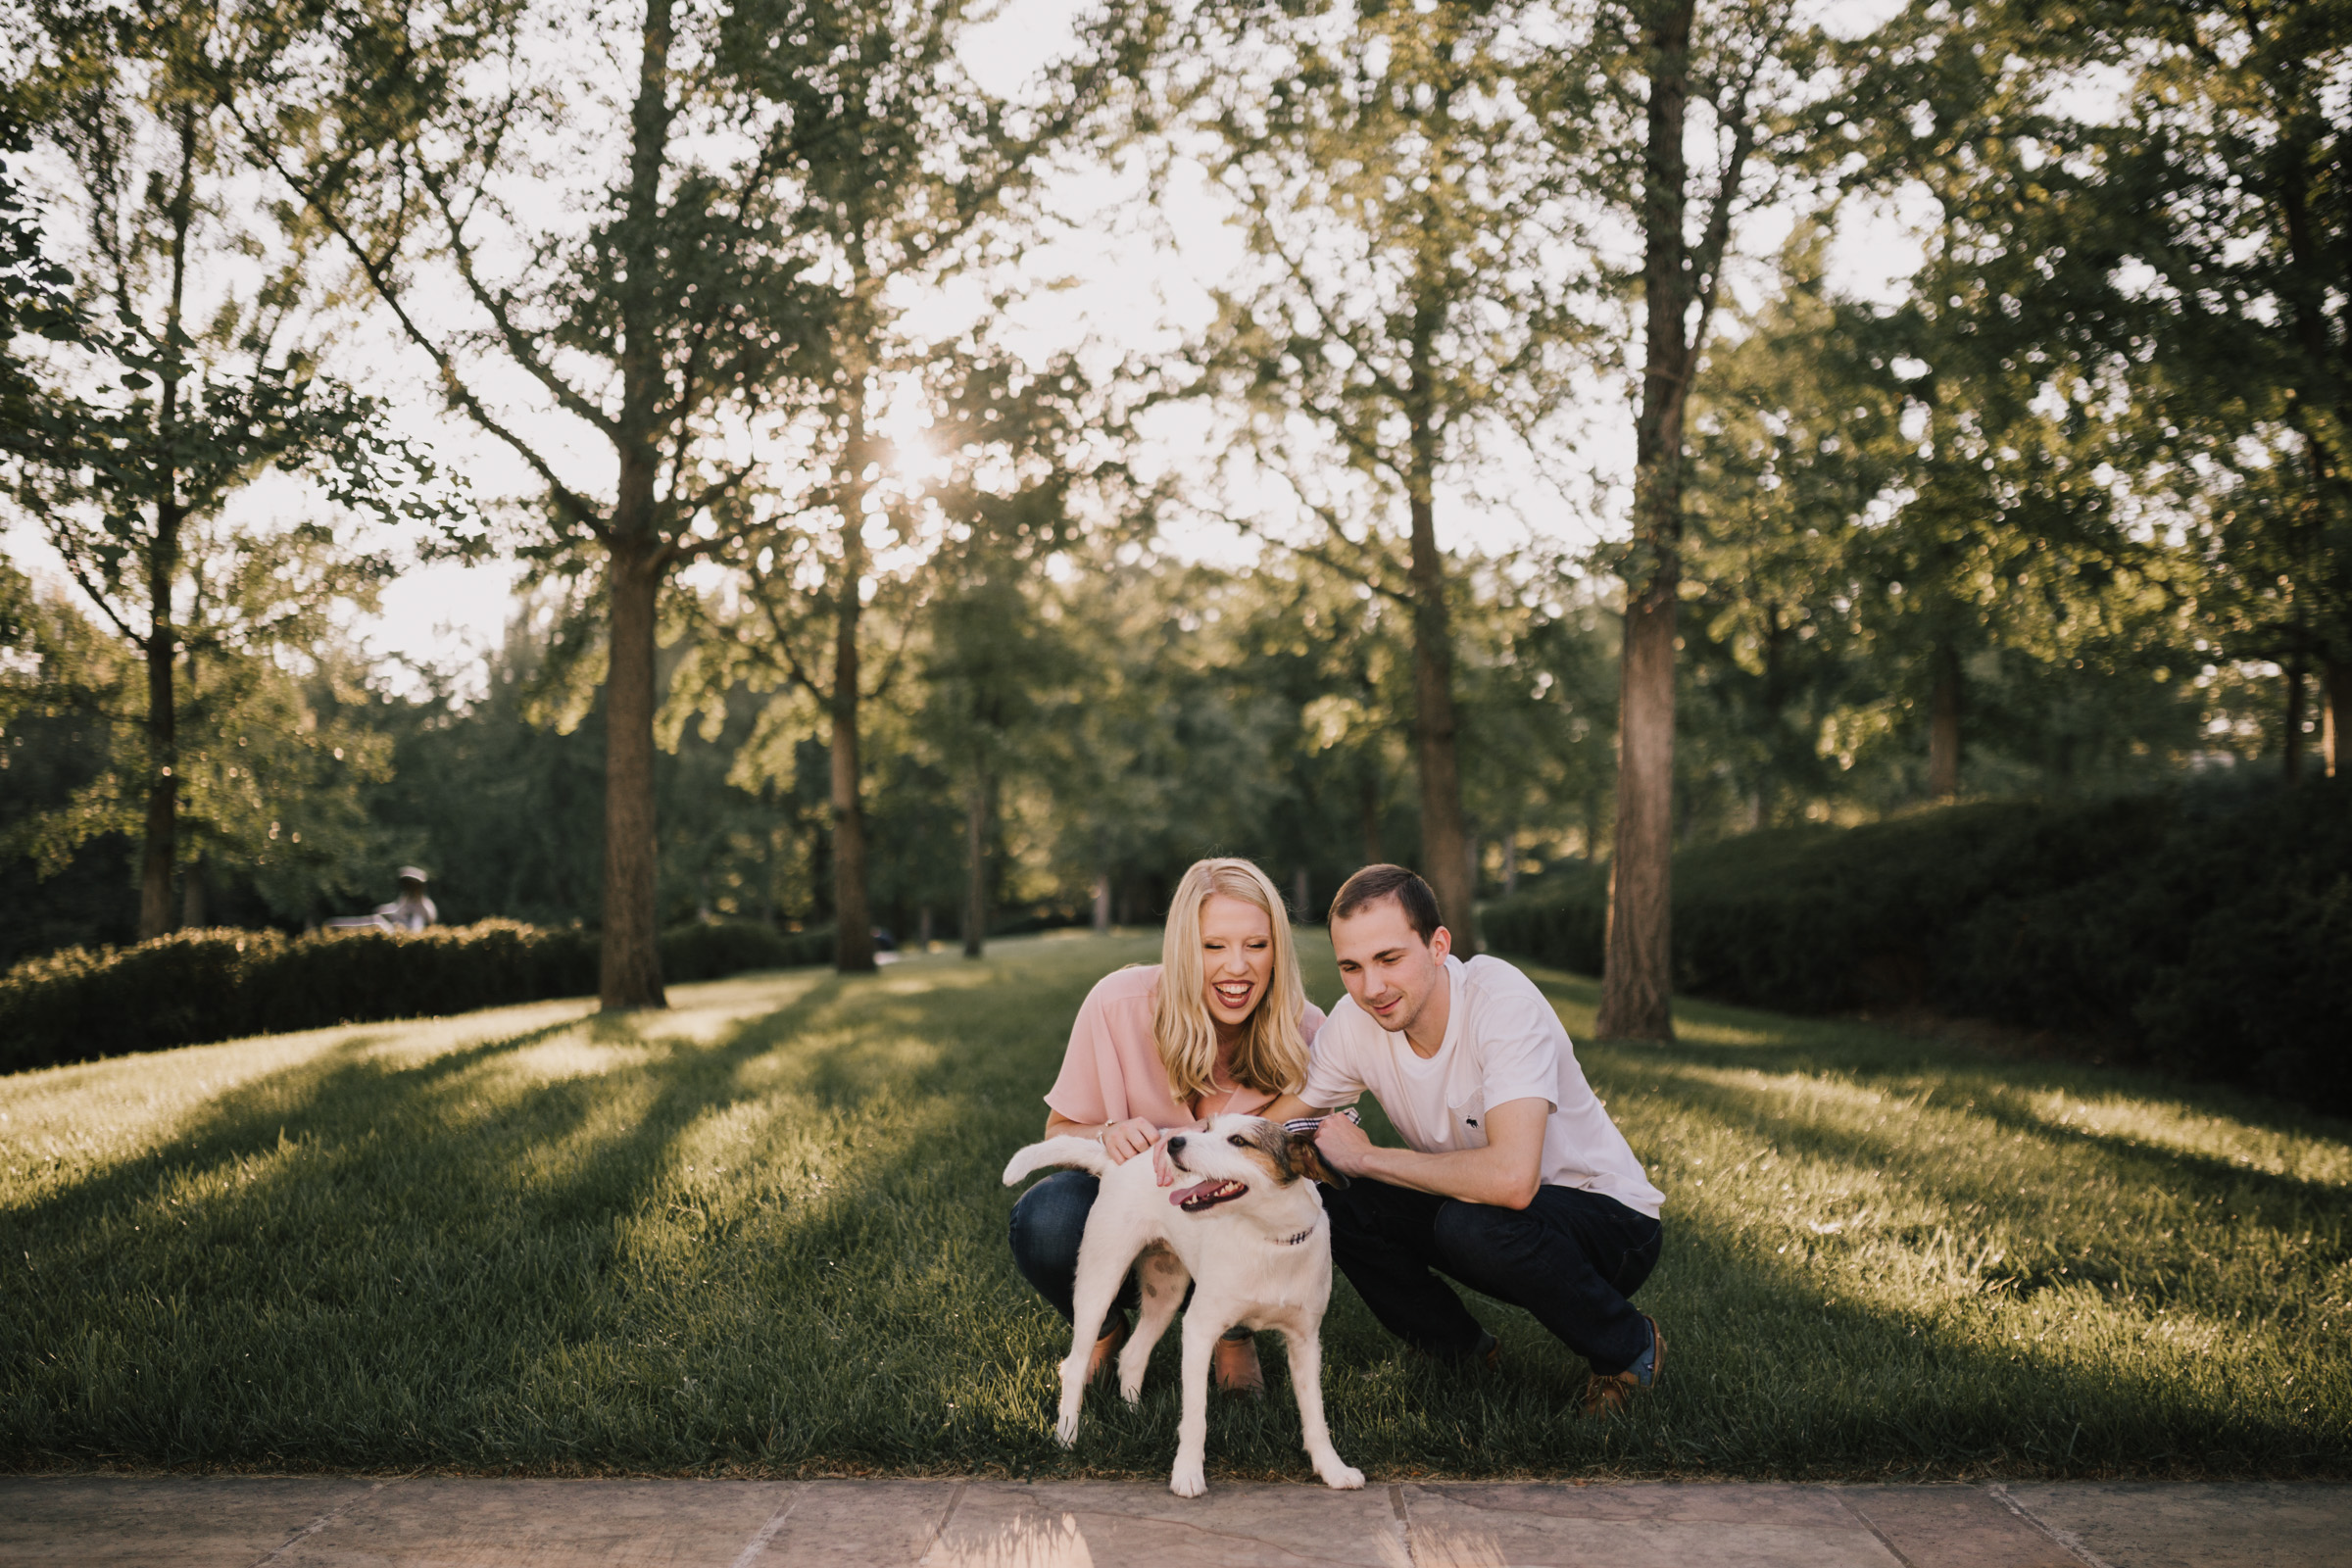 alyssa barletter photography nelson atkins art museum classic summer engagement session with dog-5.jpg